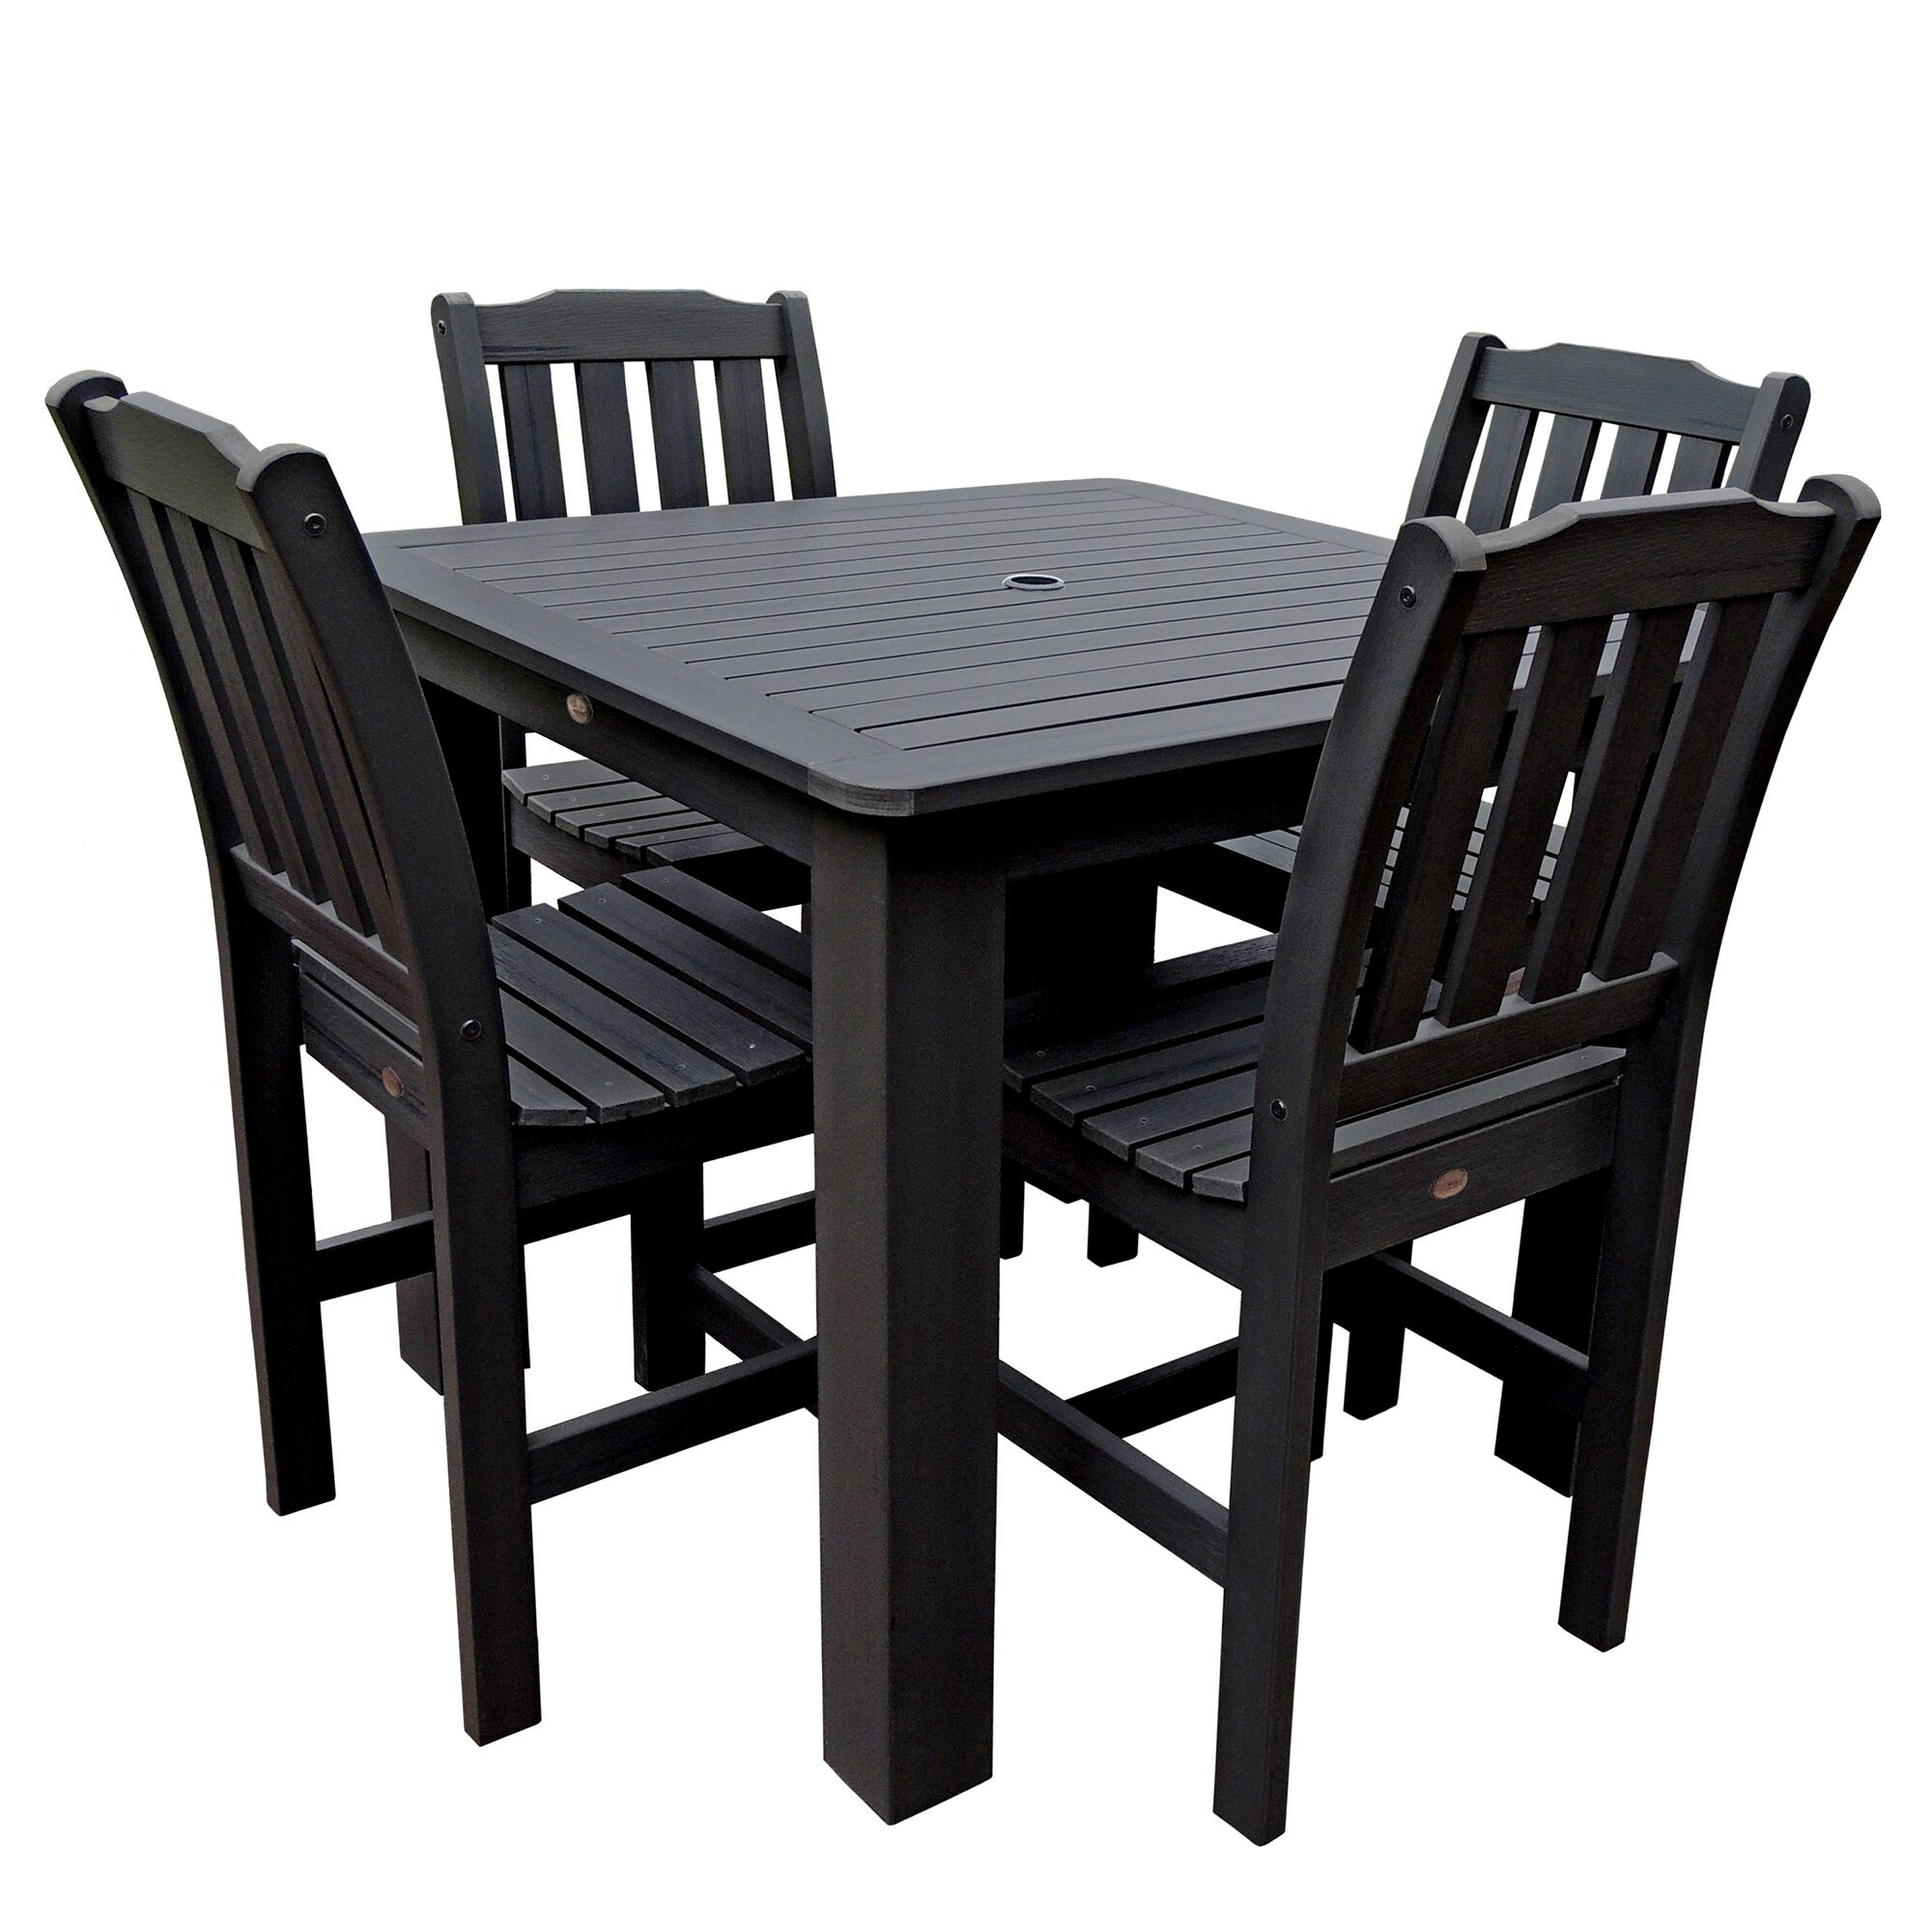 Phat Tommy Lehigh 5 Piece Dining Set Finish: Black, Table Size: 42